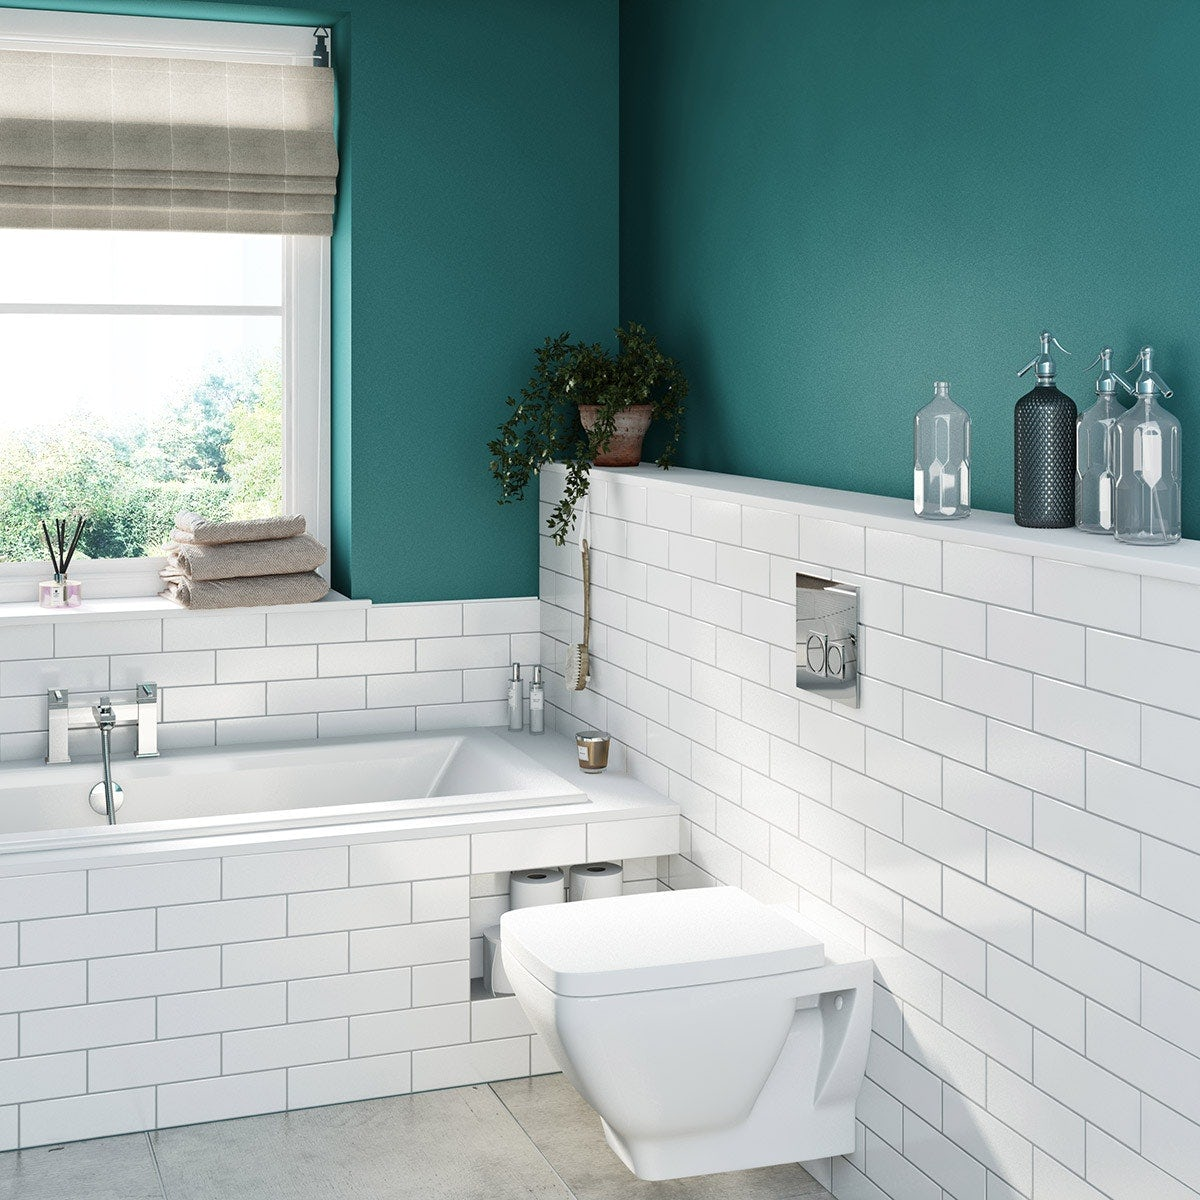 How To Put Up Tiles In A Bathroom: Tiles, Walls And Floors